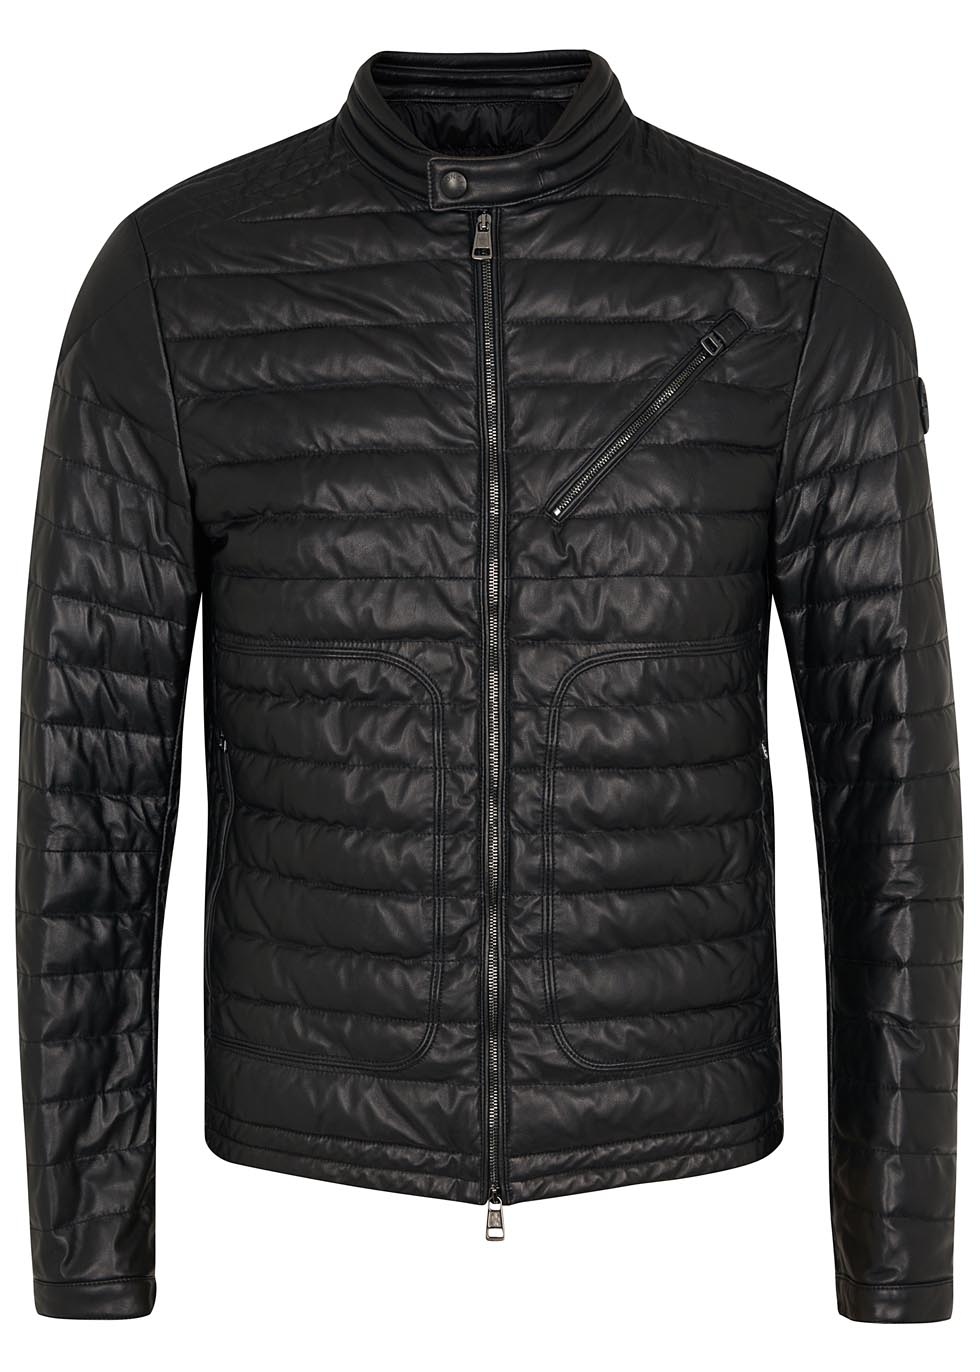 7276a27aec91 Moncler Casteu Black Quilted Leather Jacket in Black for Men - Lyst